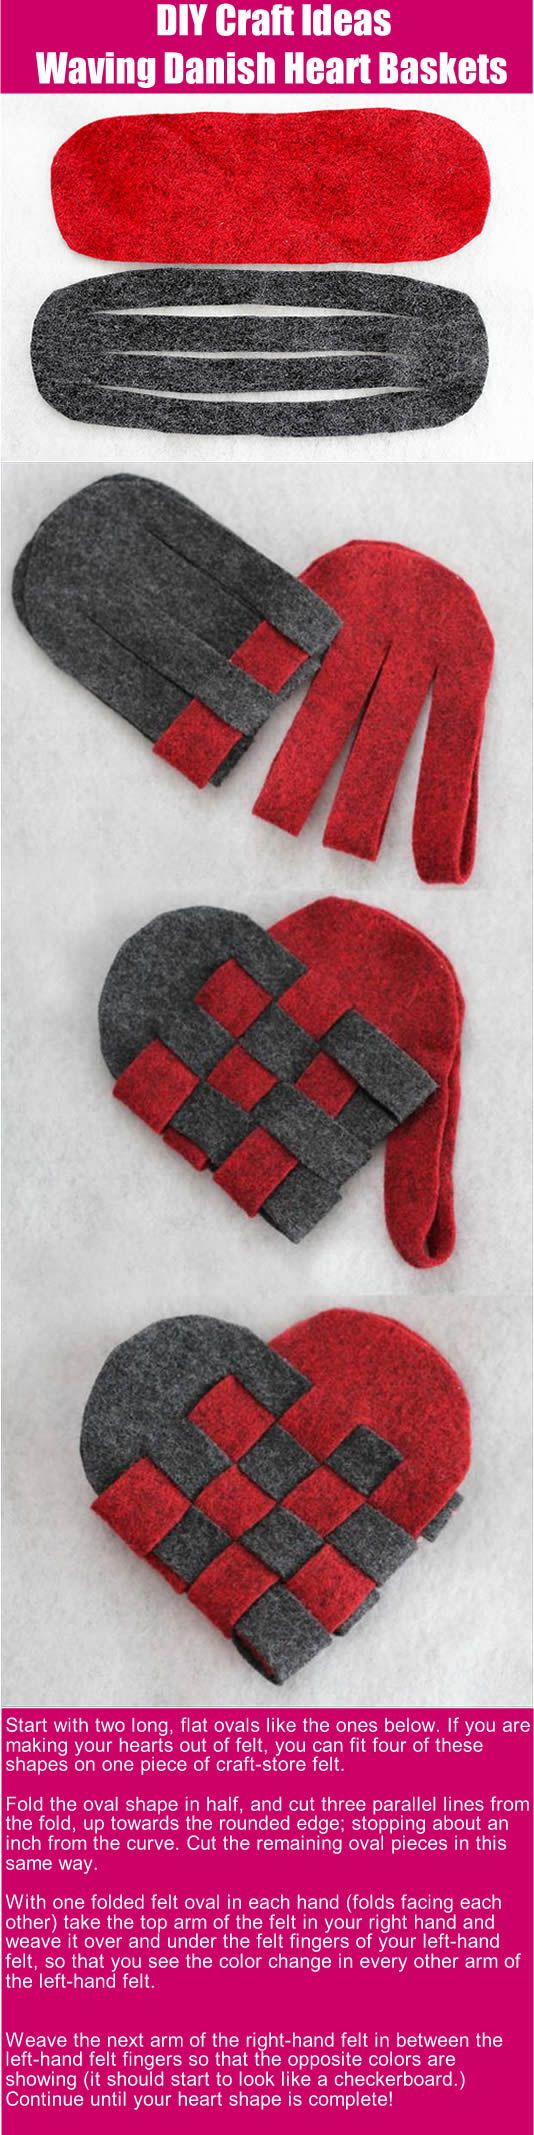 DIY craft ideas: Waving Danish Heart Basket